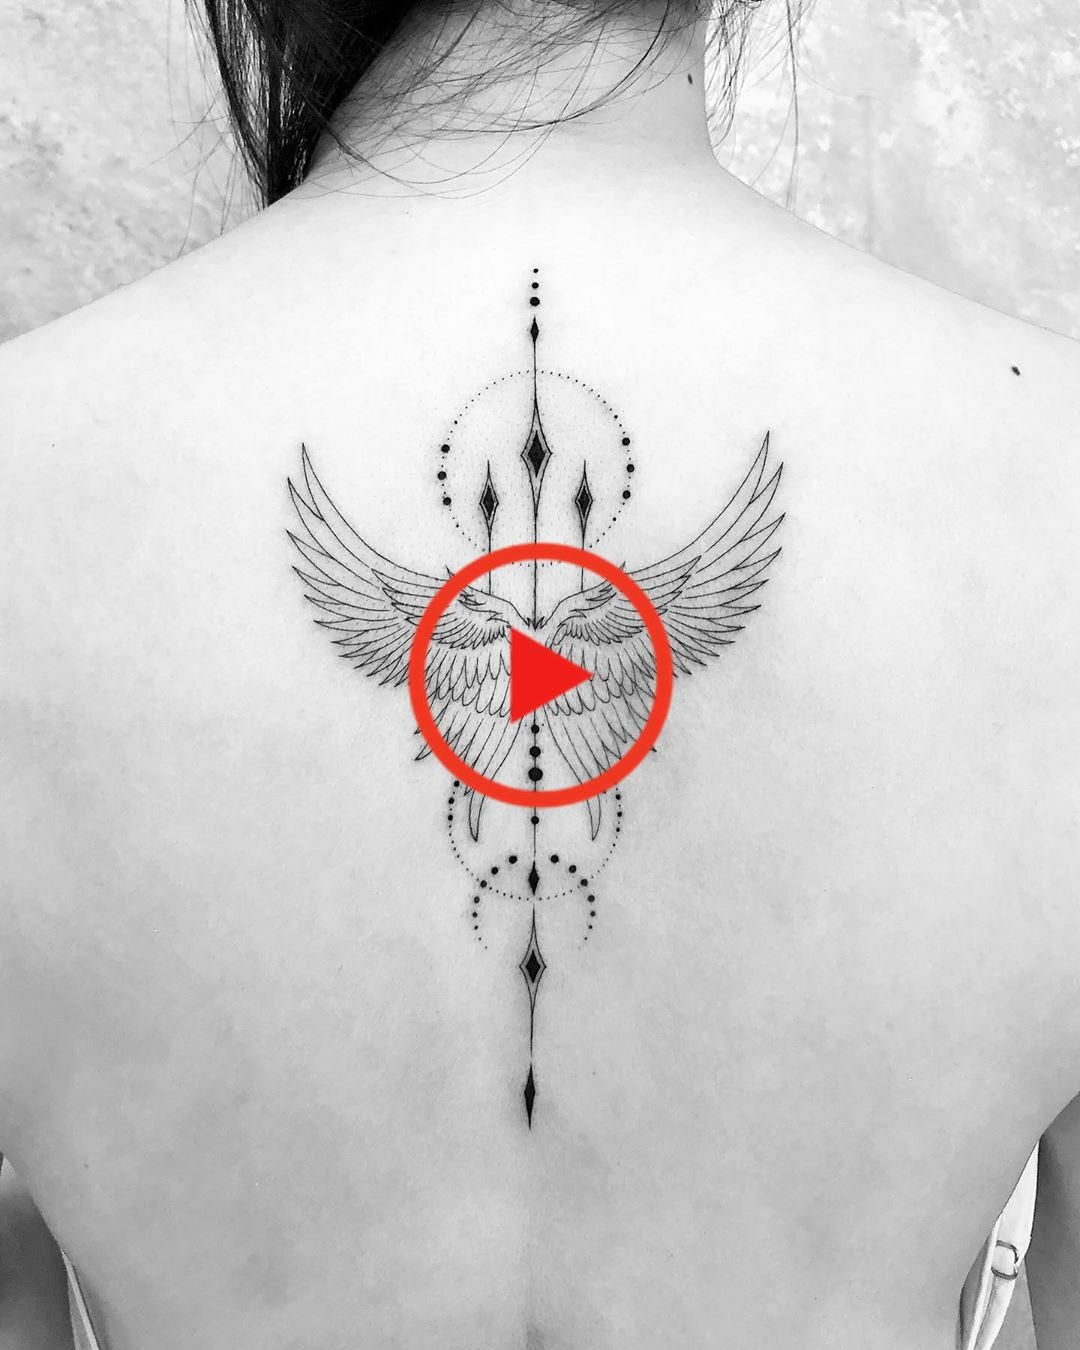 36+ Best Compass tattoo meaning in the bible image ideas